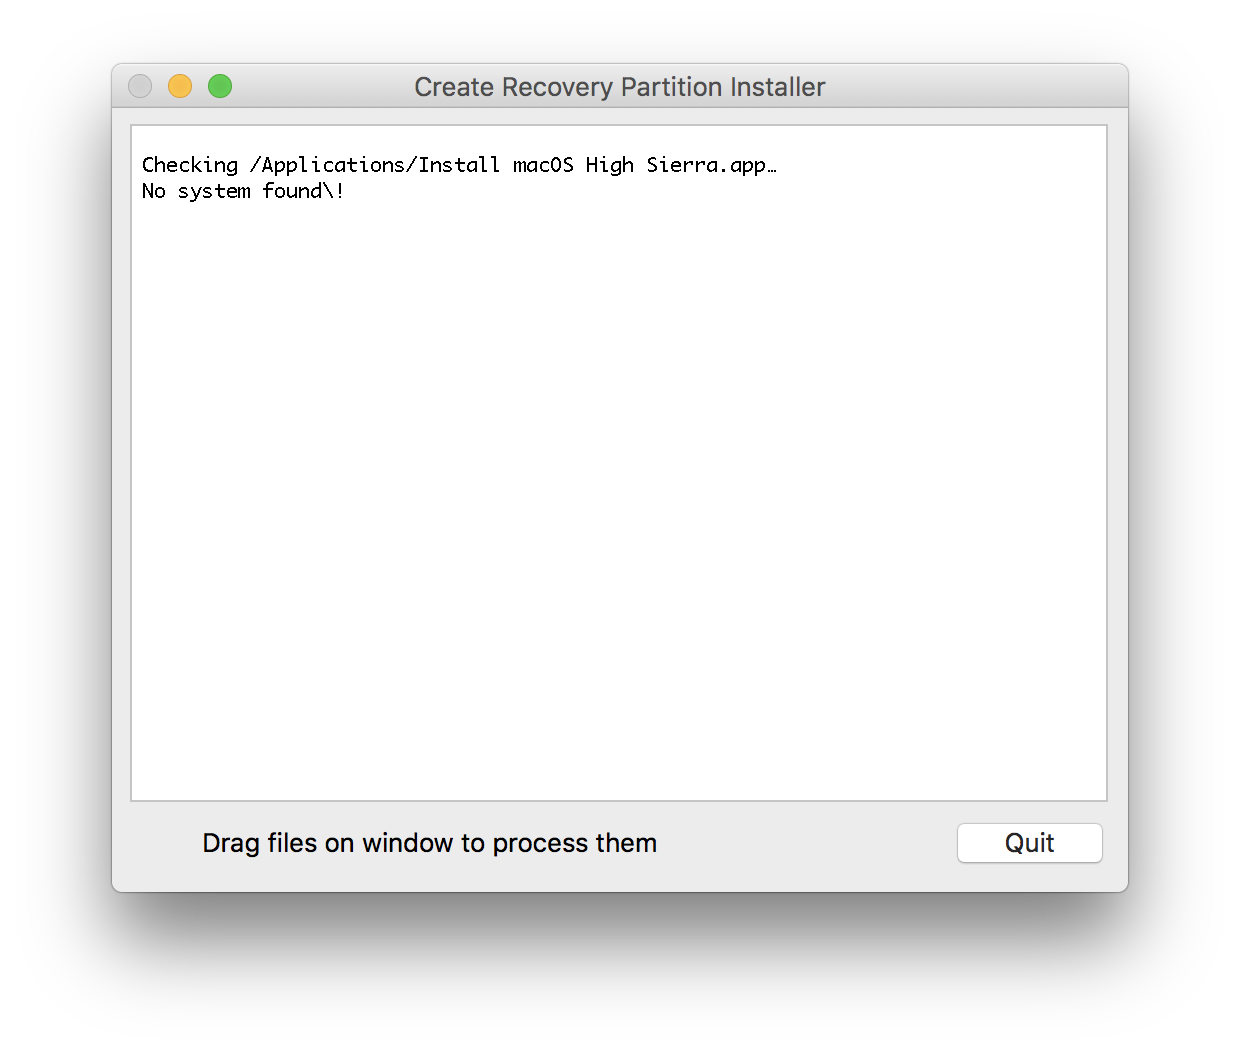 Not working with macOS High Sierra · Issue #9 · MagerValp/Create